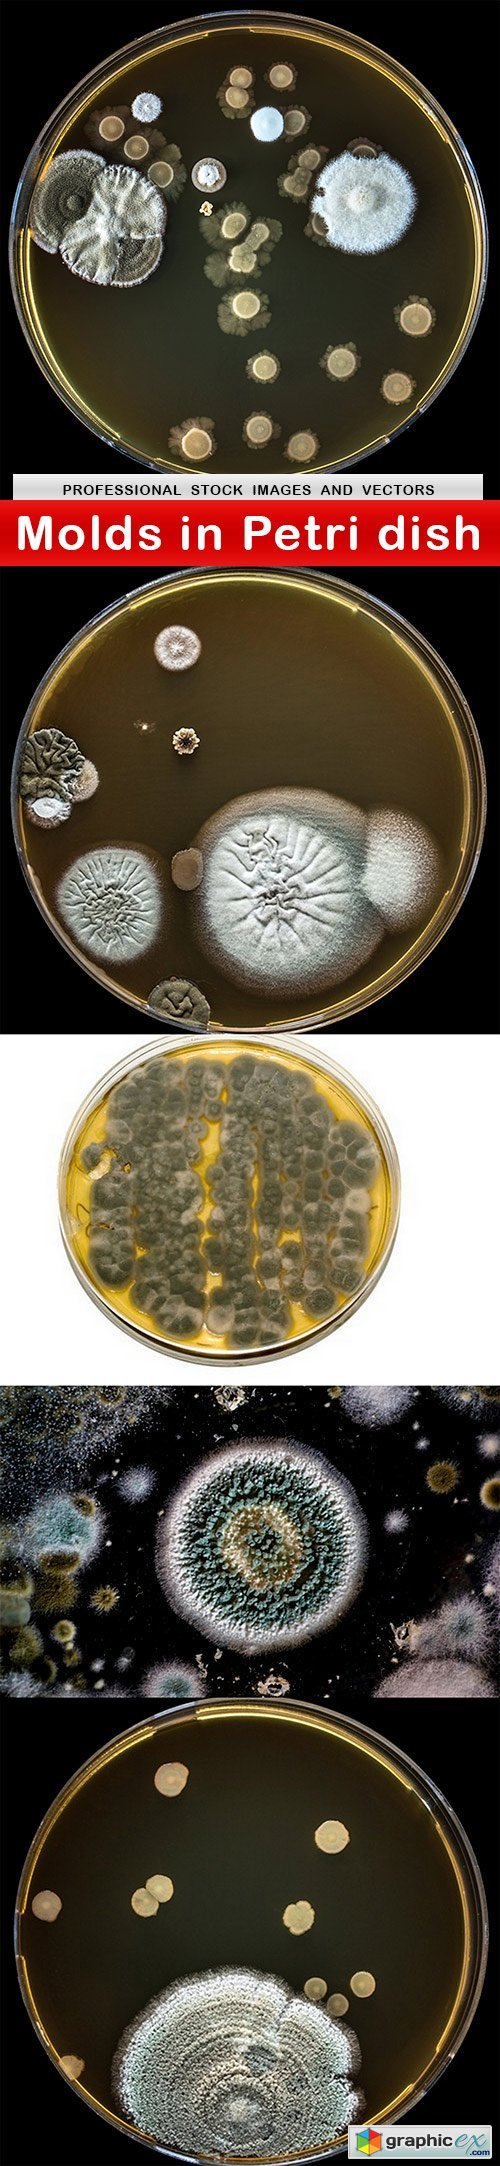 Molds in Petri dish - 5 UHQ JPEG